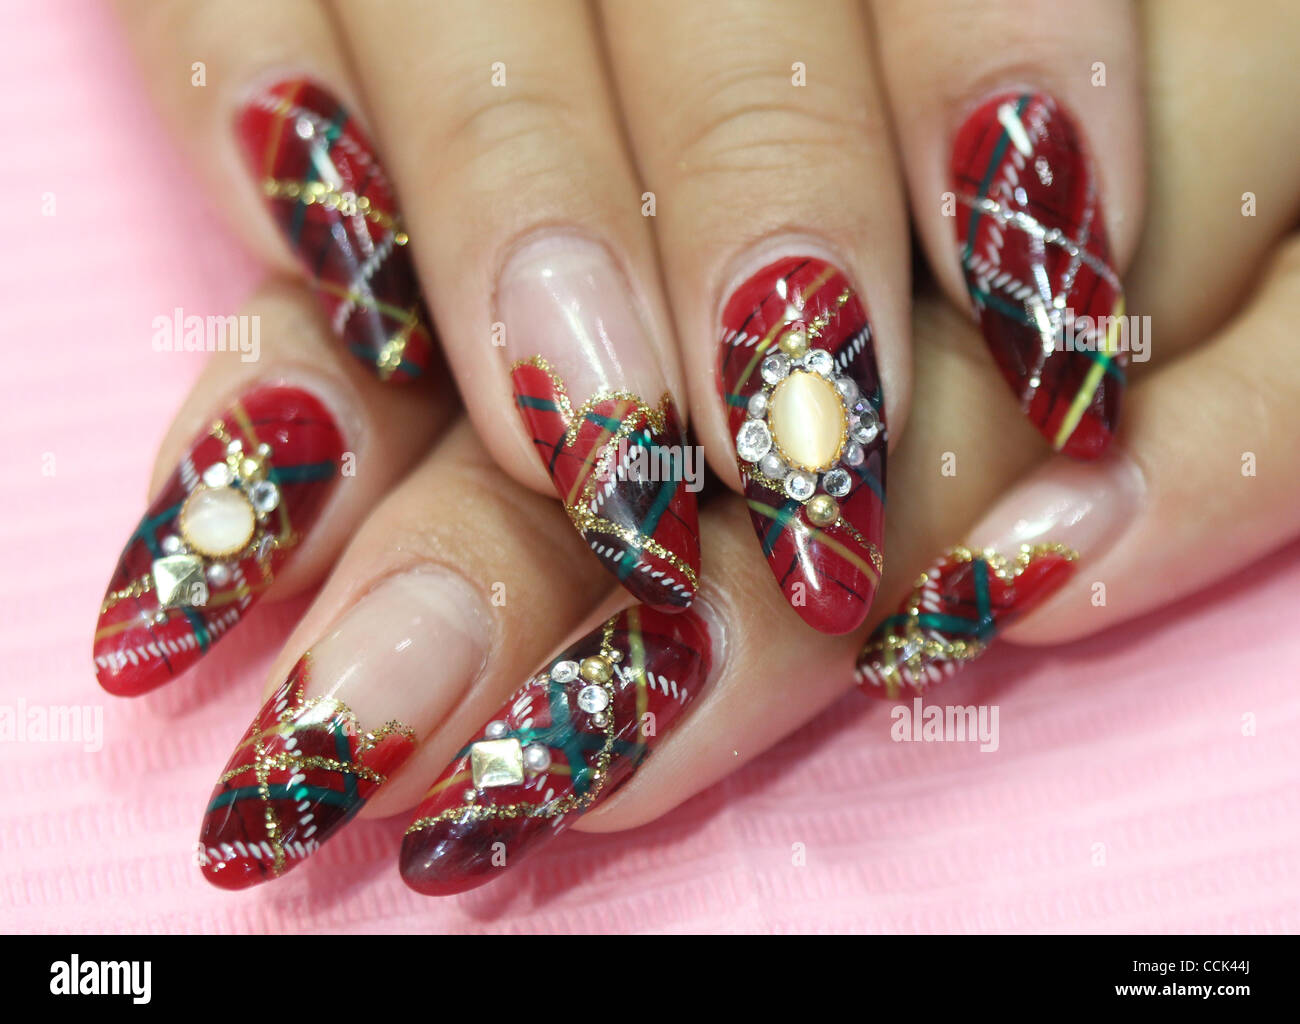 Nov. 29, 2010 - Tokyo, Japan - Nail artist shows her nails with ...